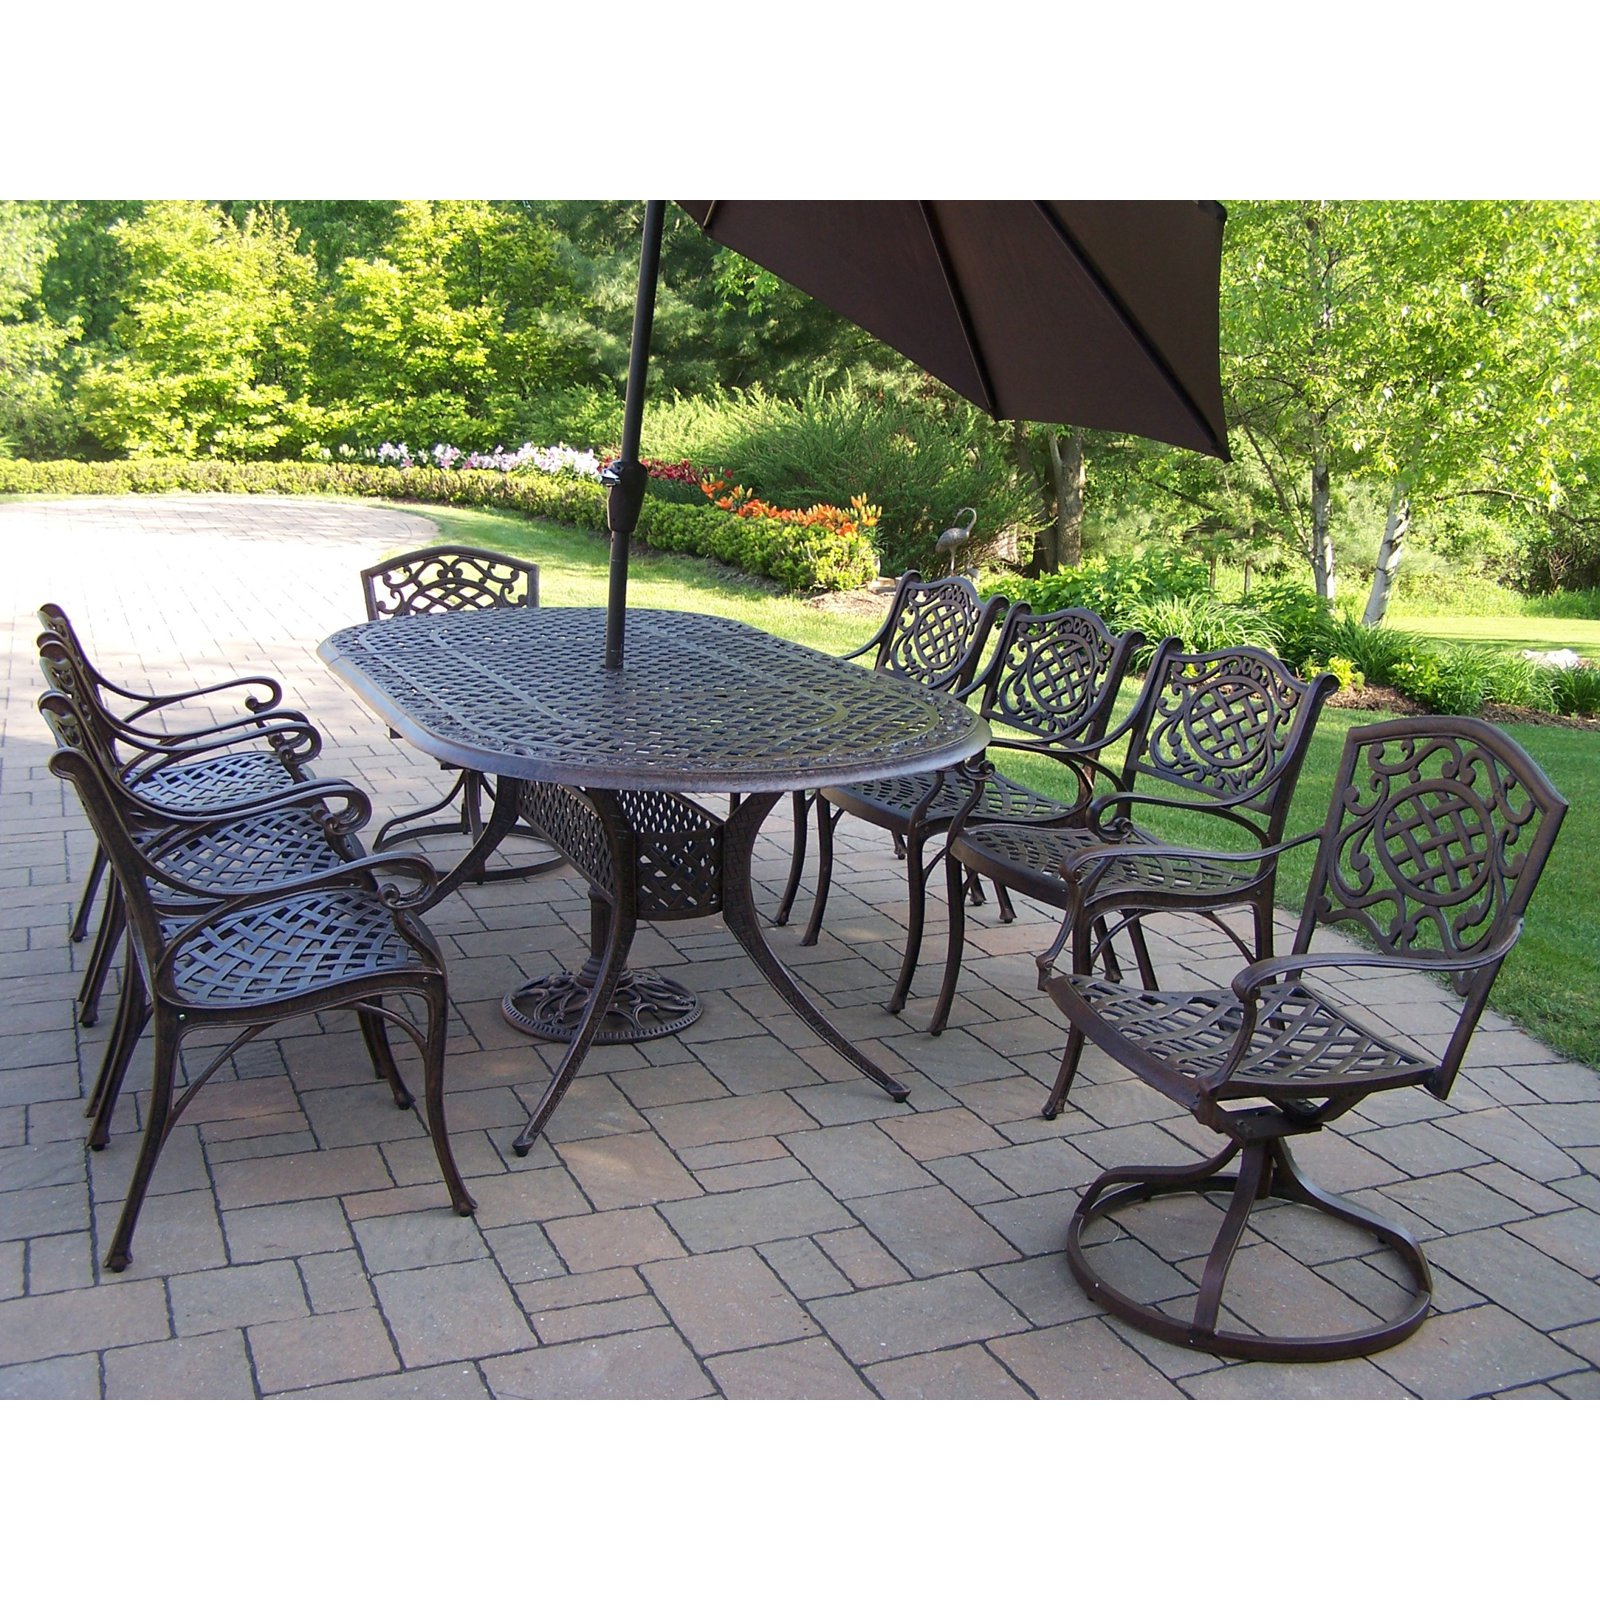 Oakland Living Mississippi Cast Aluminum 82 x 42 in. Oval Patio Dining Set with Swivel Chairs & Tilting Umbrella with Stand - Seats 8